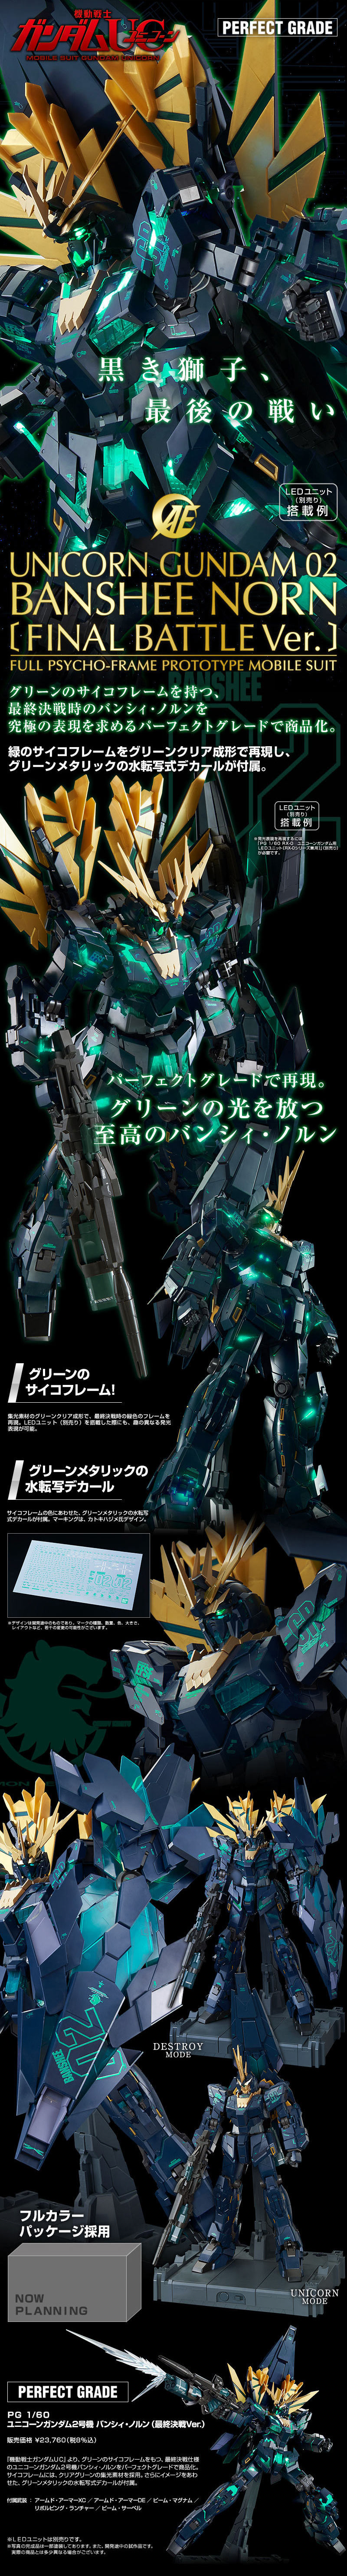 Unicorn Gundam 02 Banshee Norn Final Battle Ver.